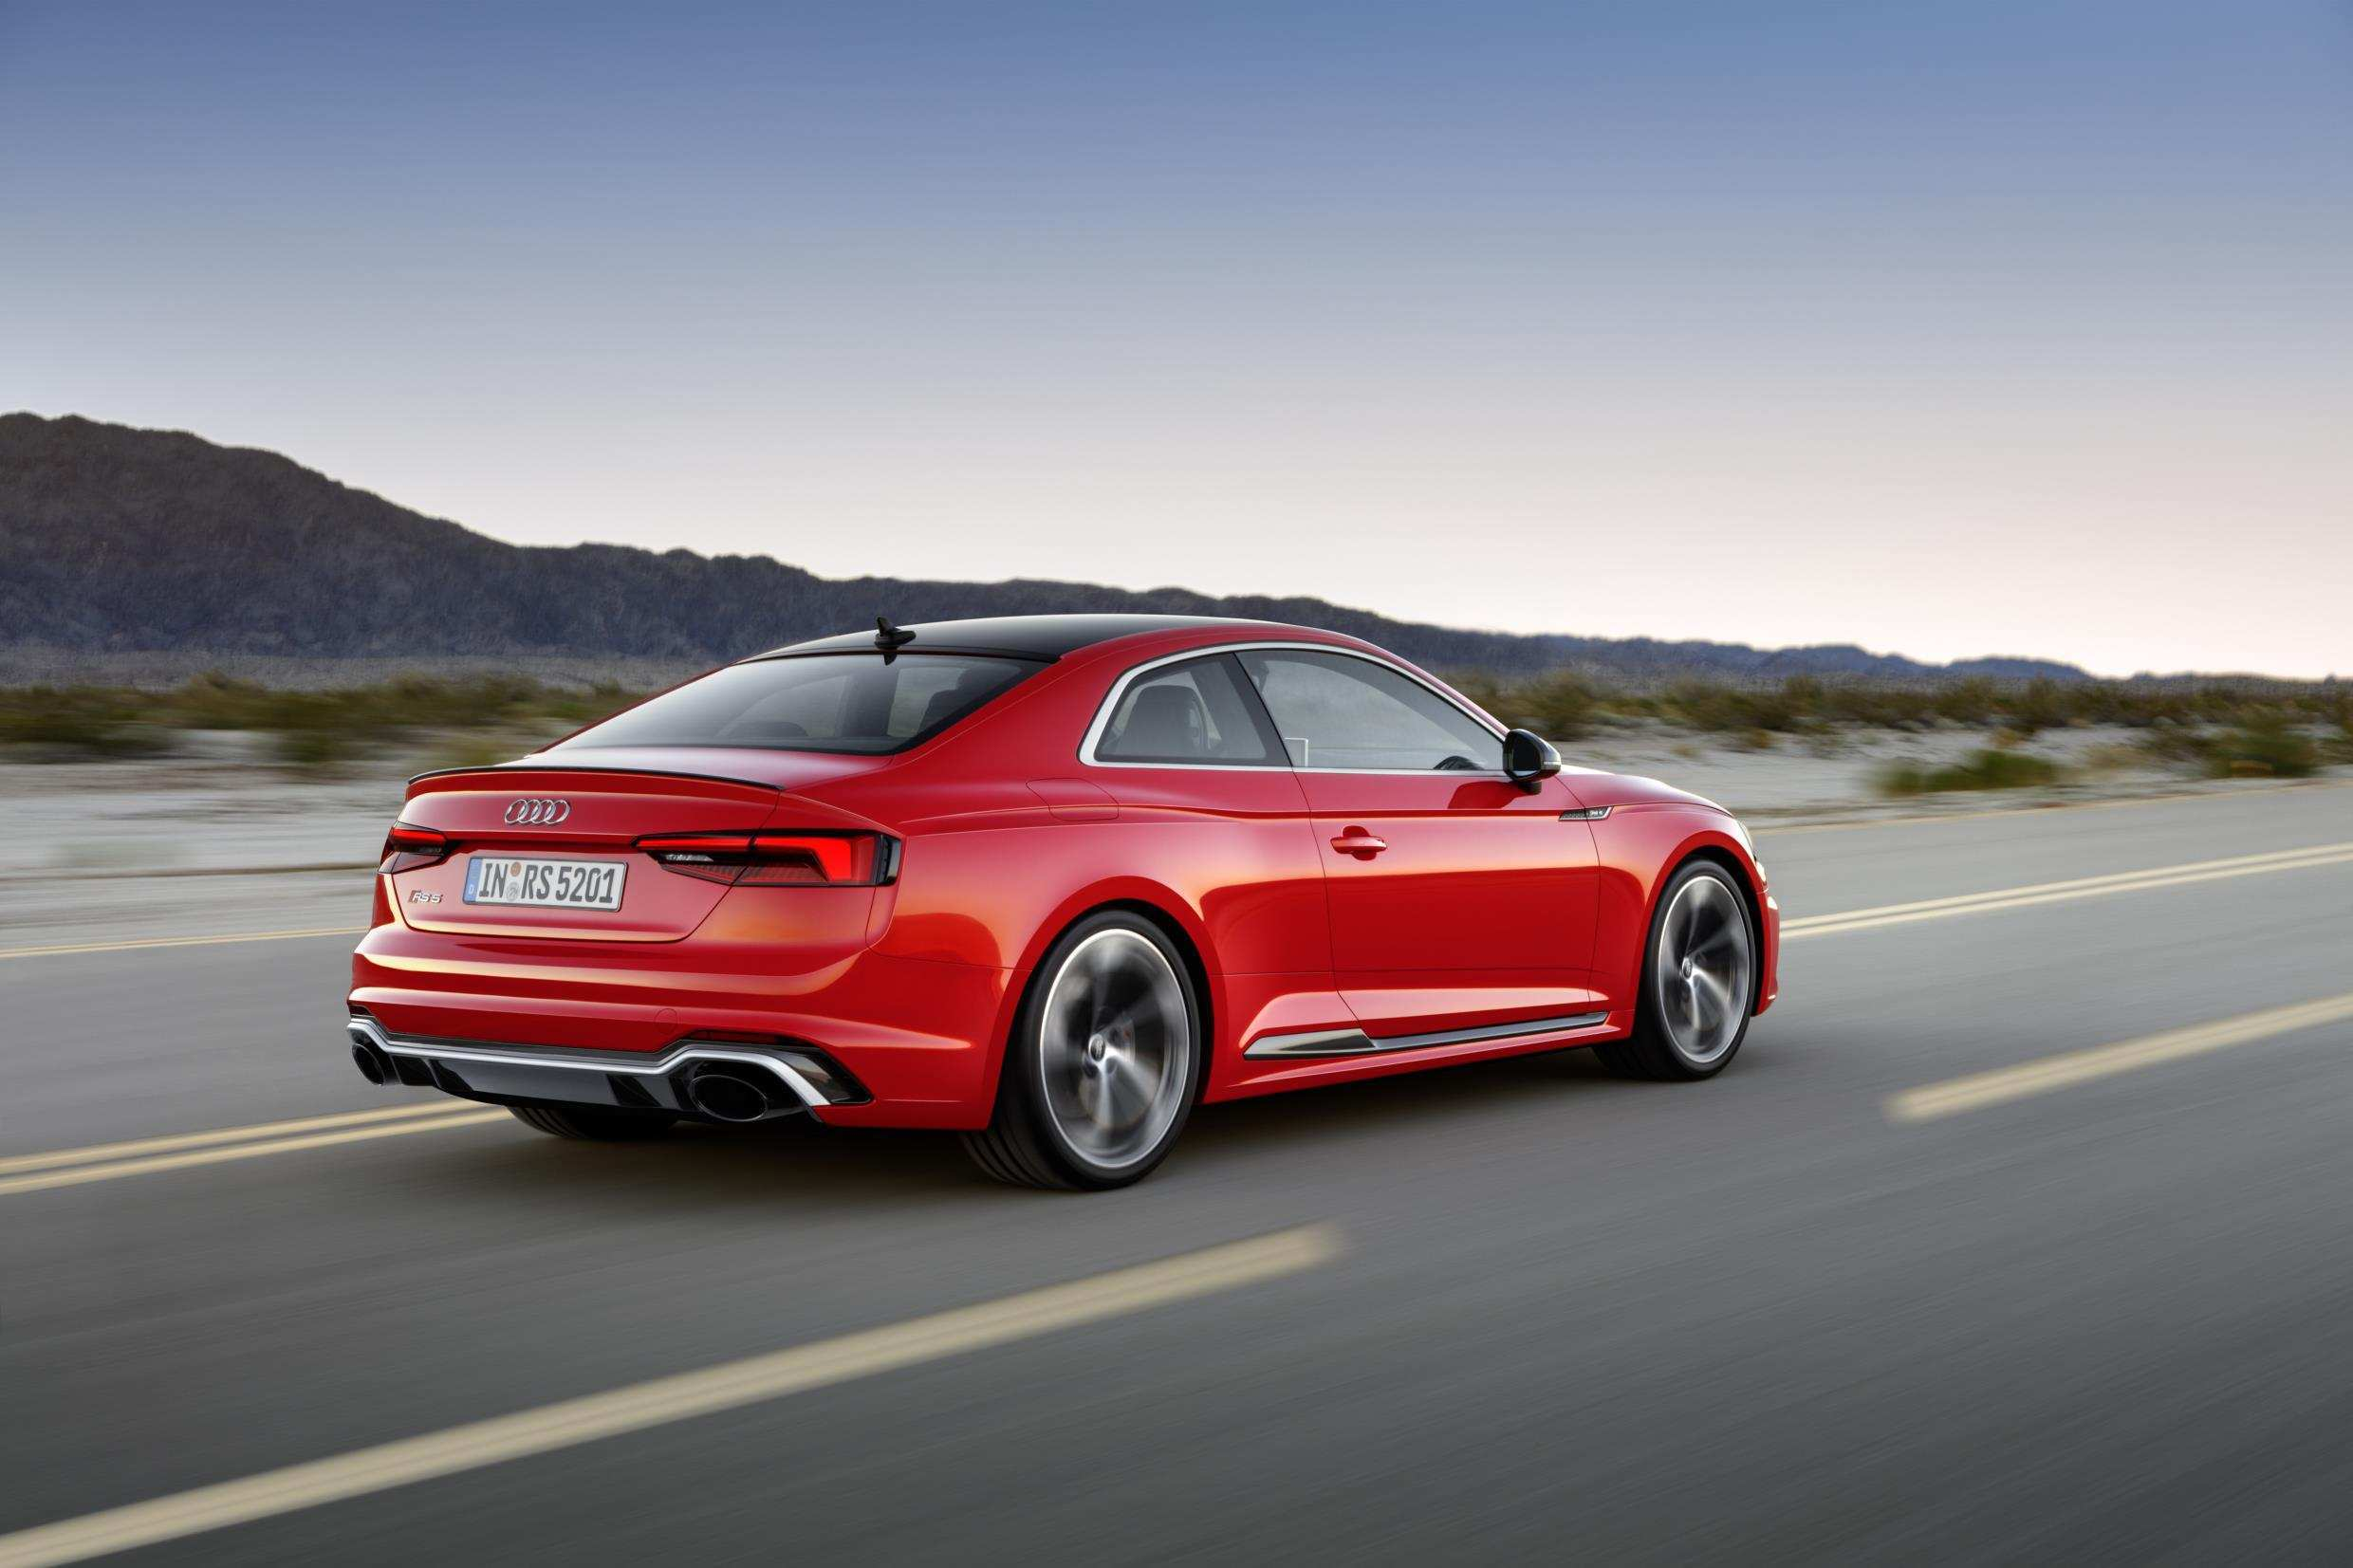 25 All New 2019 Audi Rs4 Usa Release Date by 2019 Audi Rs4 Usa